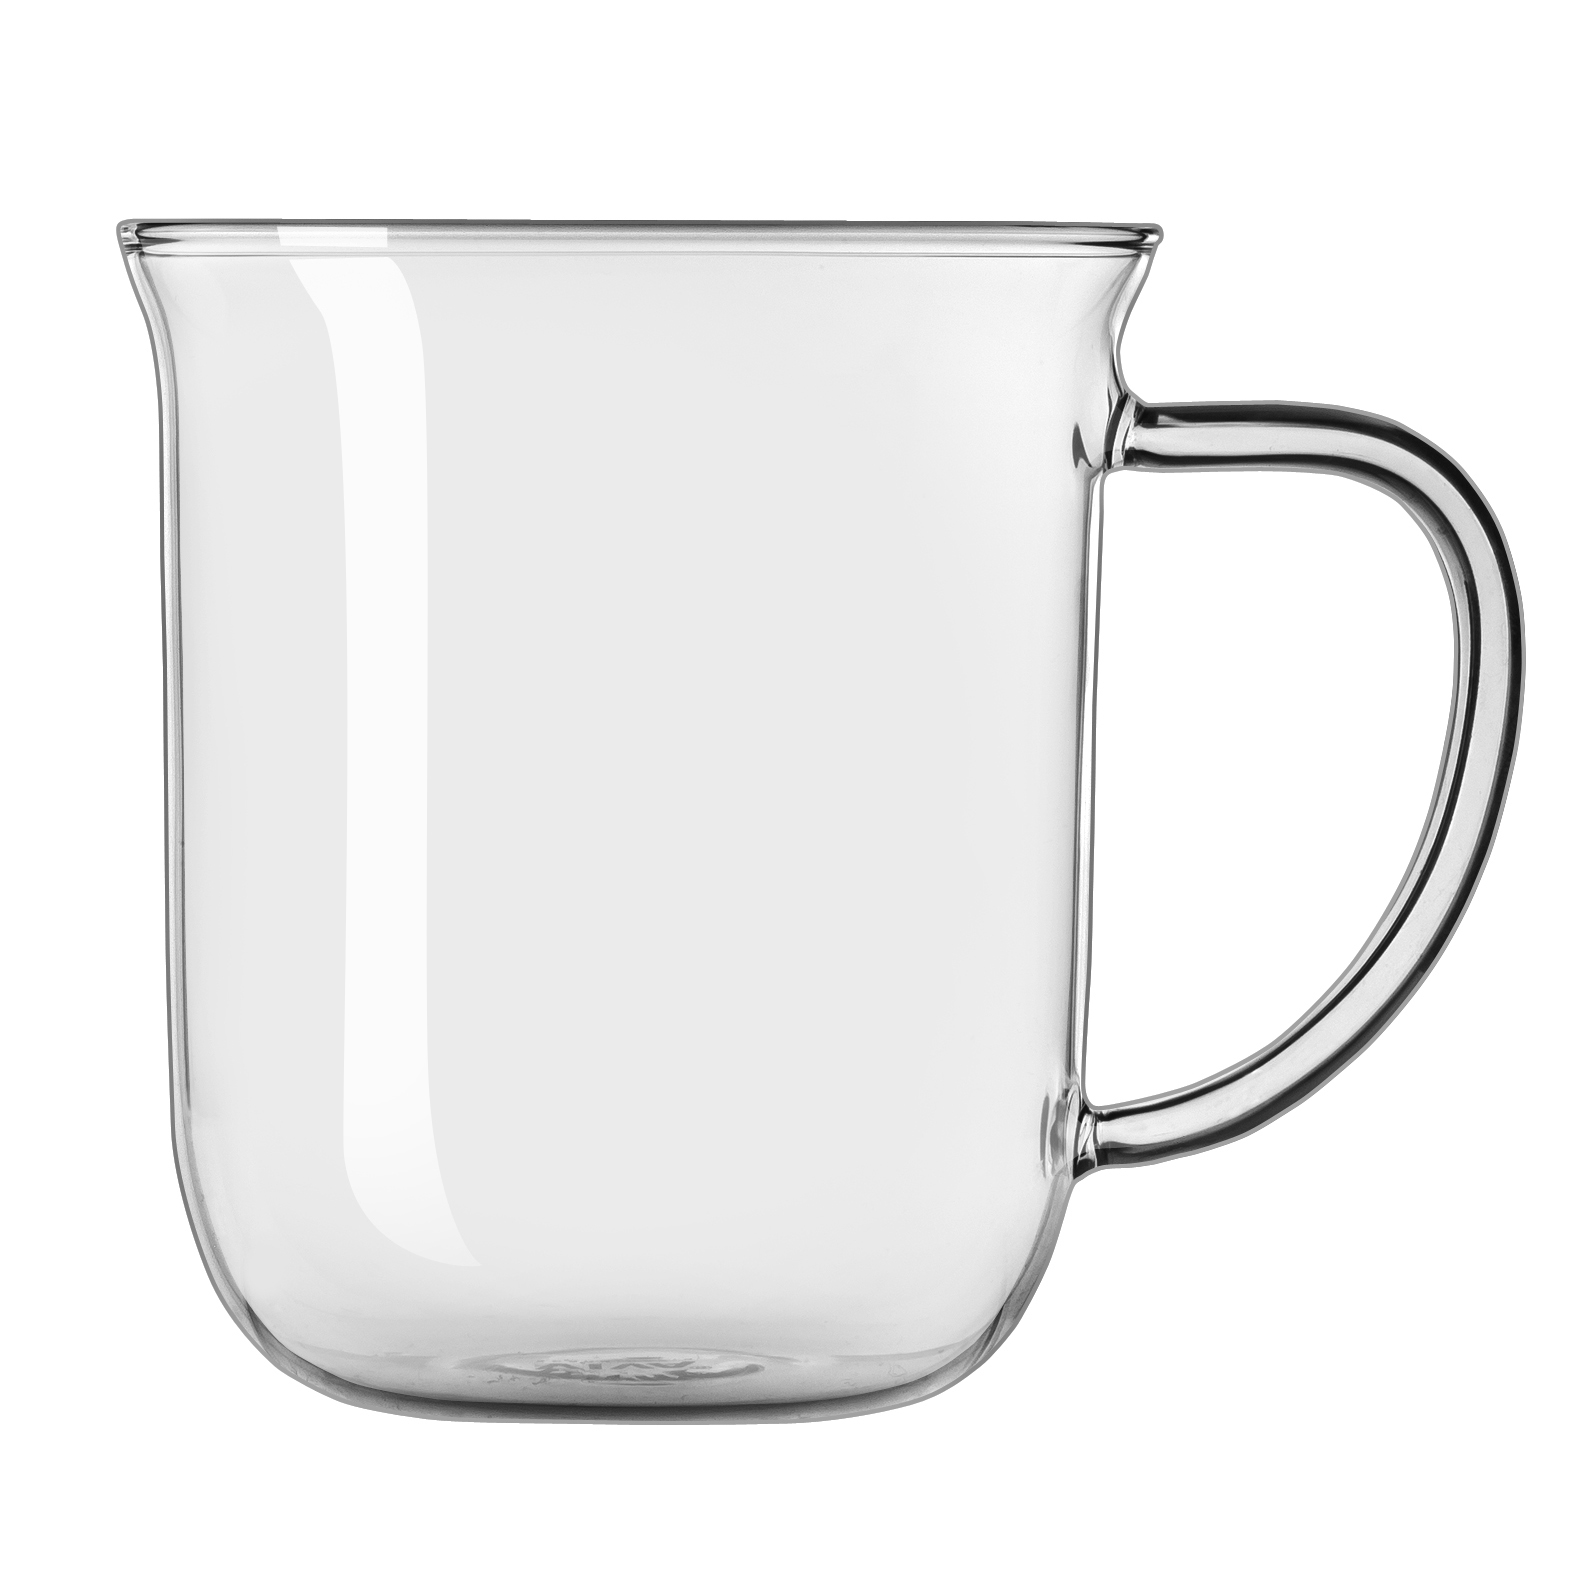 Libbey Glass VS71600 mug, glass, coffee